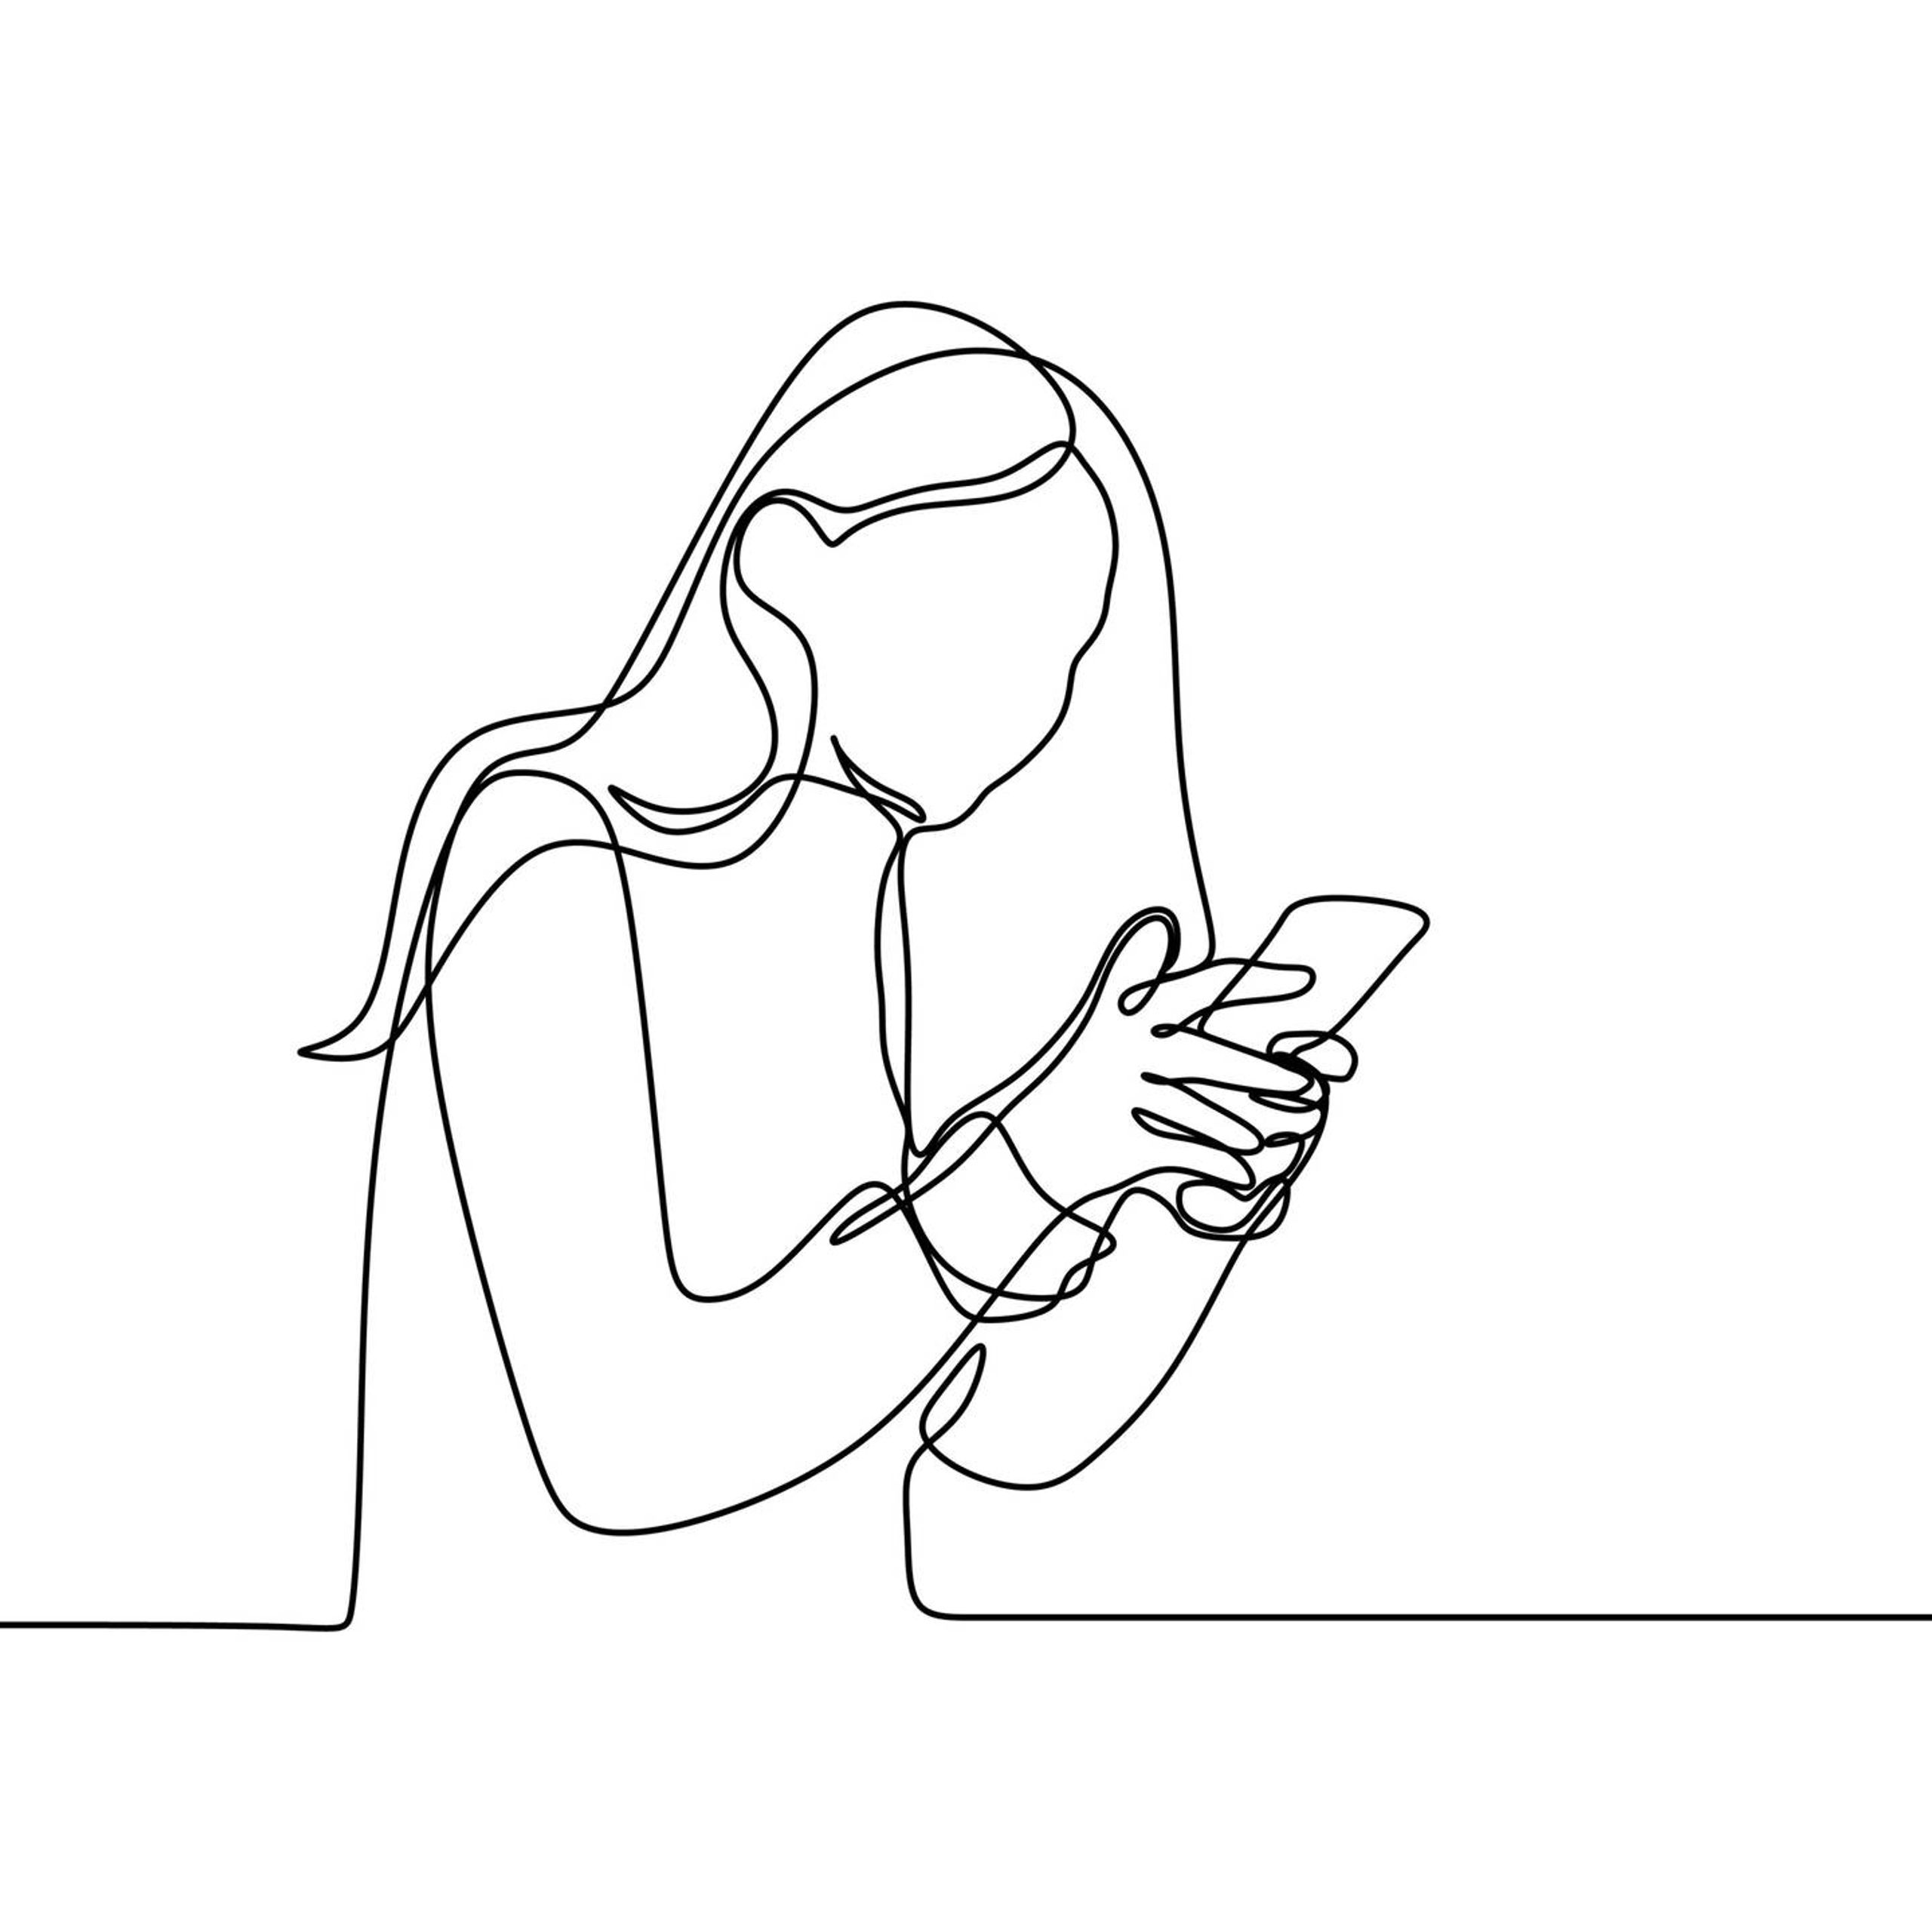 Illustration of a woman looking at her smartphone, queer identity